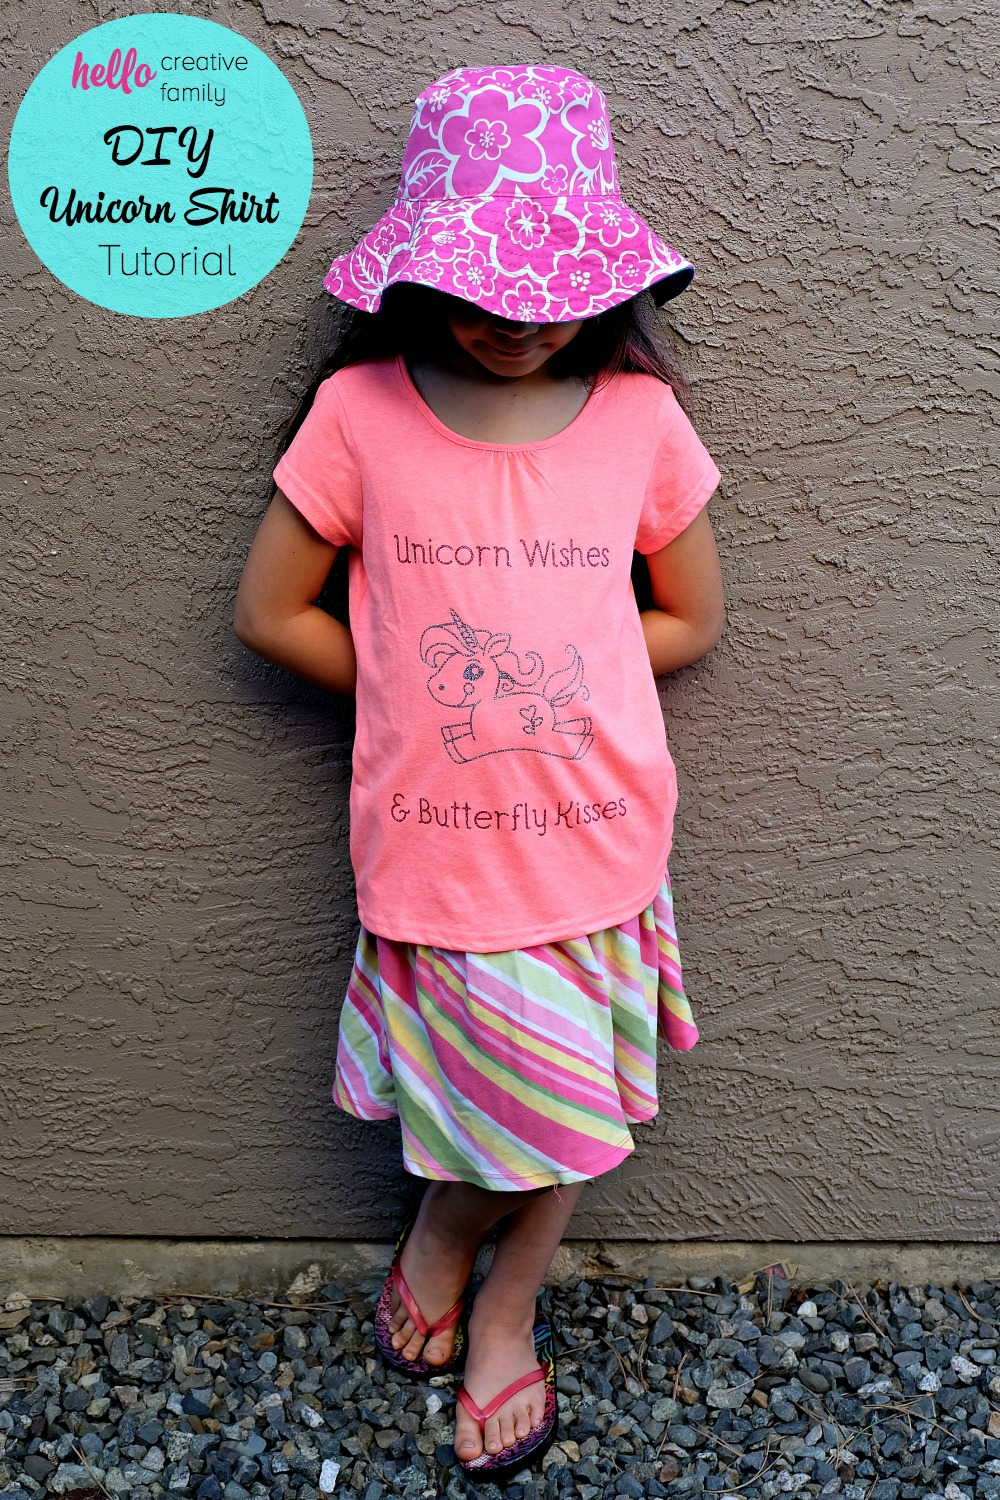 "Such an adorable shirt idea! ""Unicorn Wishes and Butterfly Kisses!"" Kids feel extra special when they wear handmade clothing made with love. Learn how to make a DIY Unicorn Shirt with your Cricut Explore. Such a great Cricut project to make cute kids clothing! This would be great for a unicorn themed birthday party!"